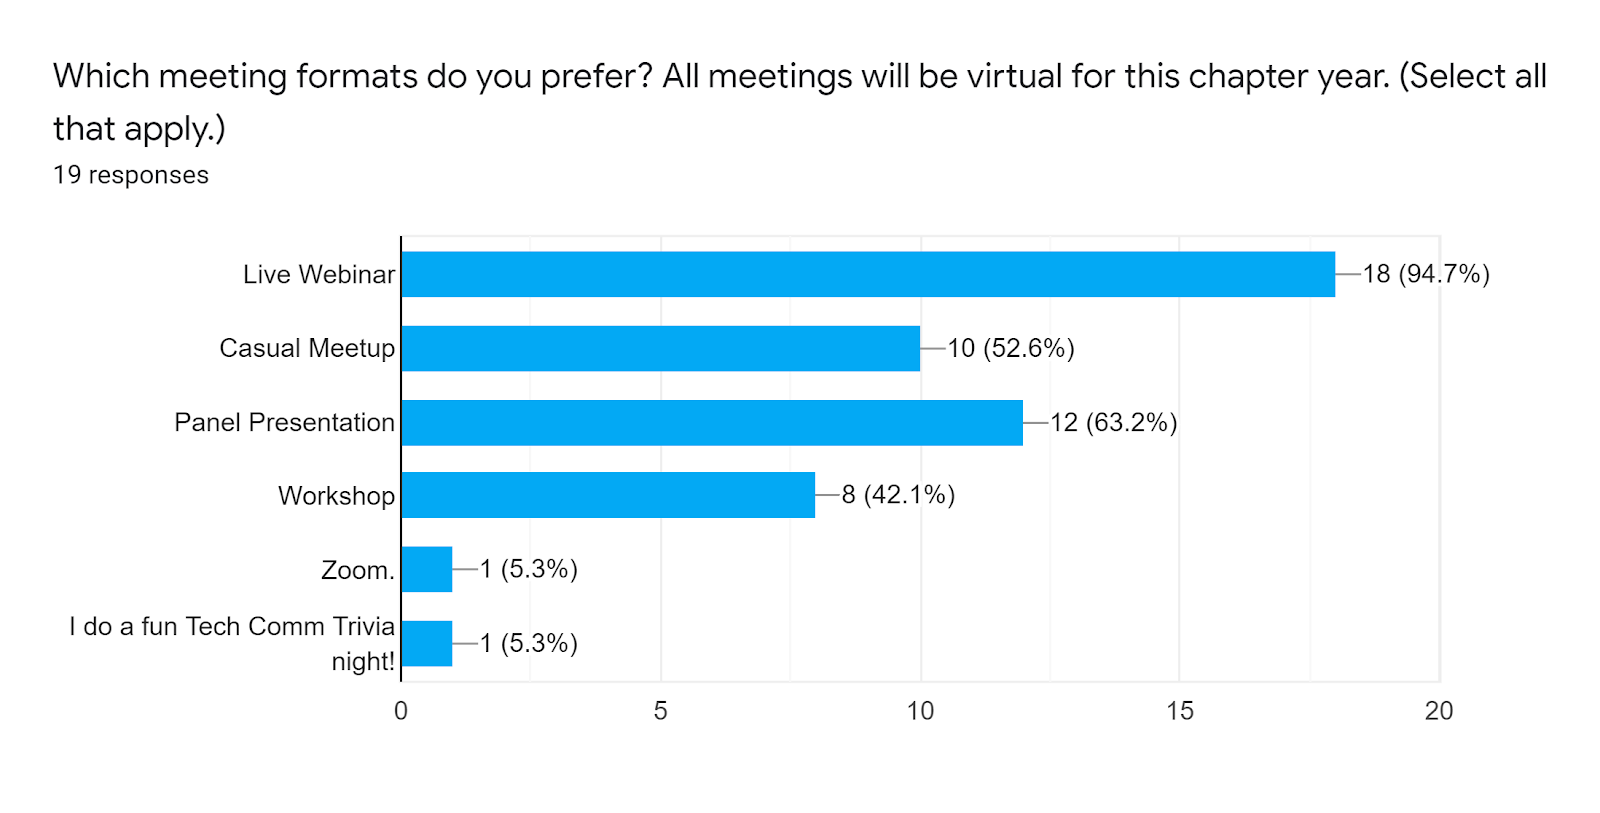 Forms response chart. Question title: Which meeting formats do you prefer? All meetings will be virtual for this chapter year. (Select all that apply.). Number of responses: 19 responses.